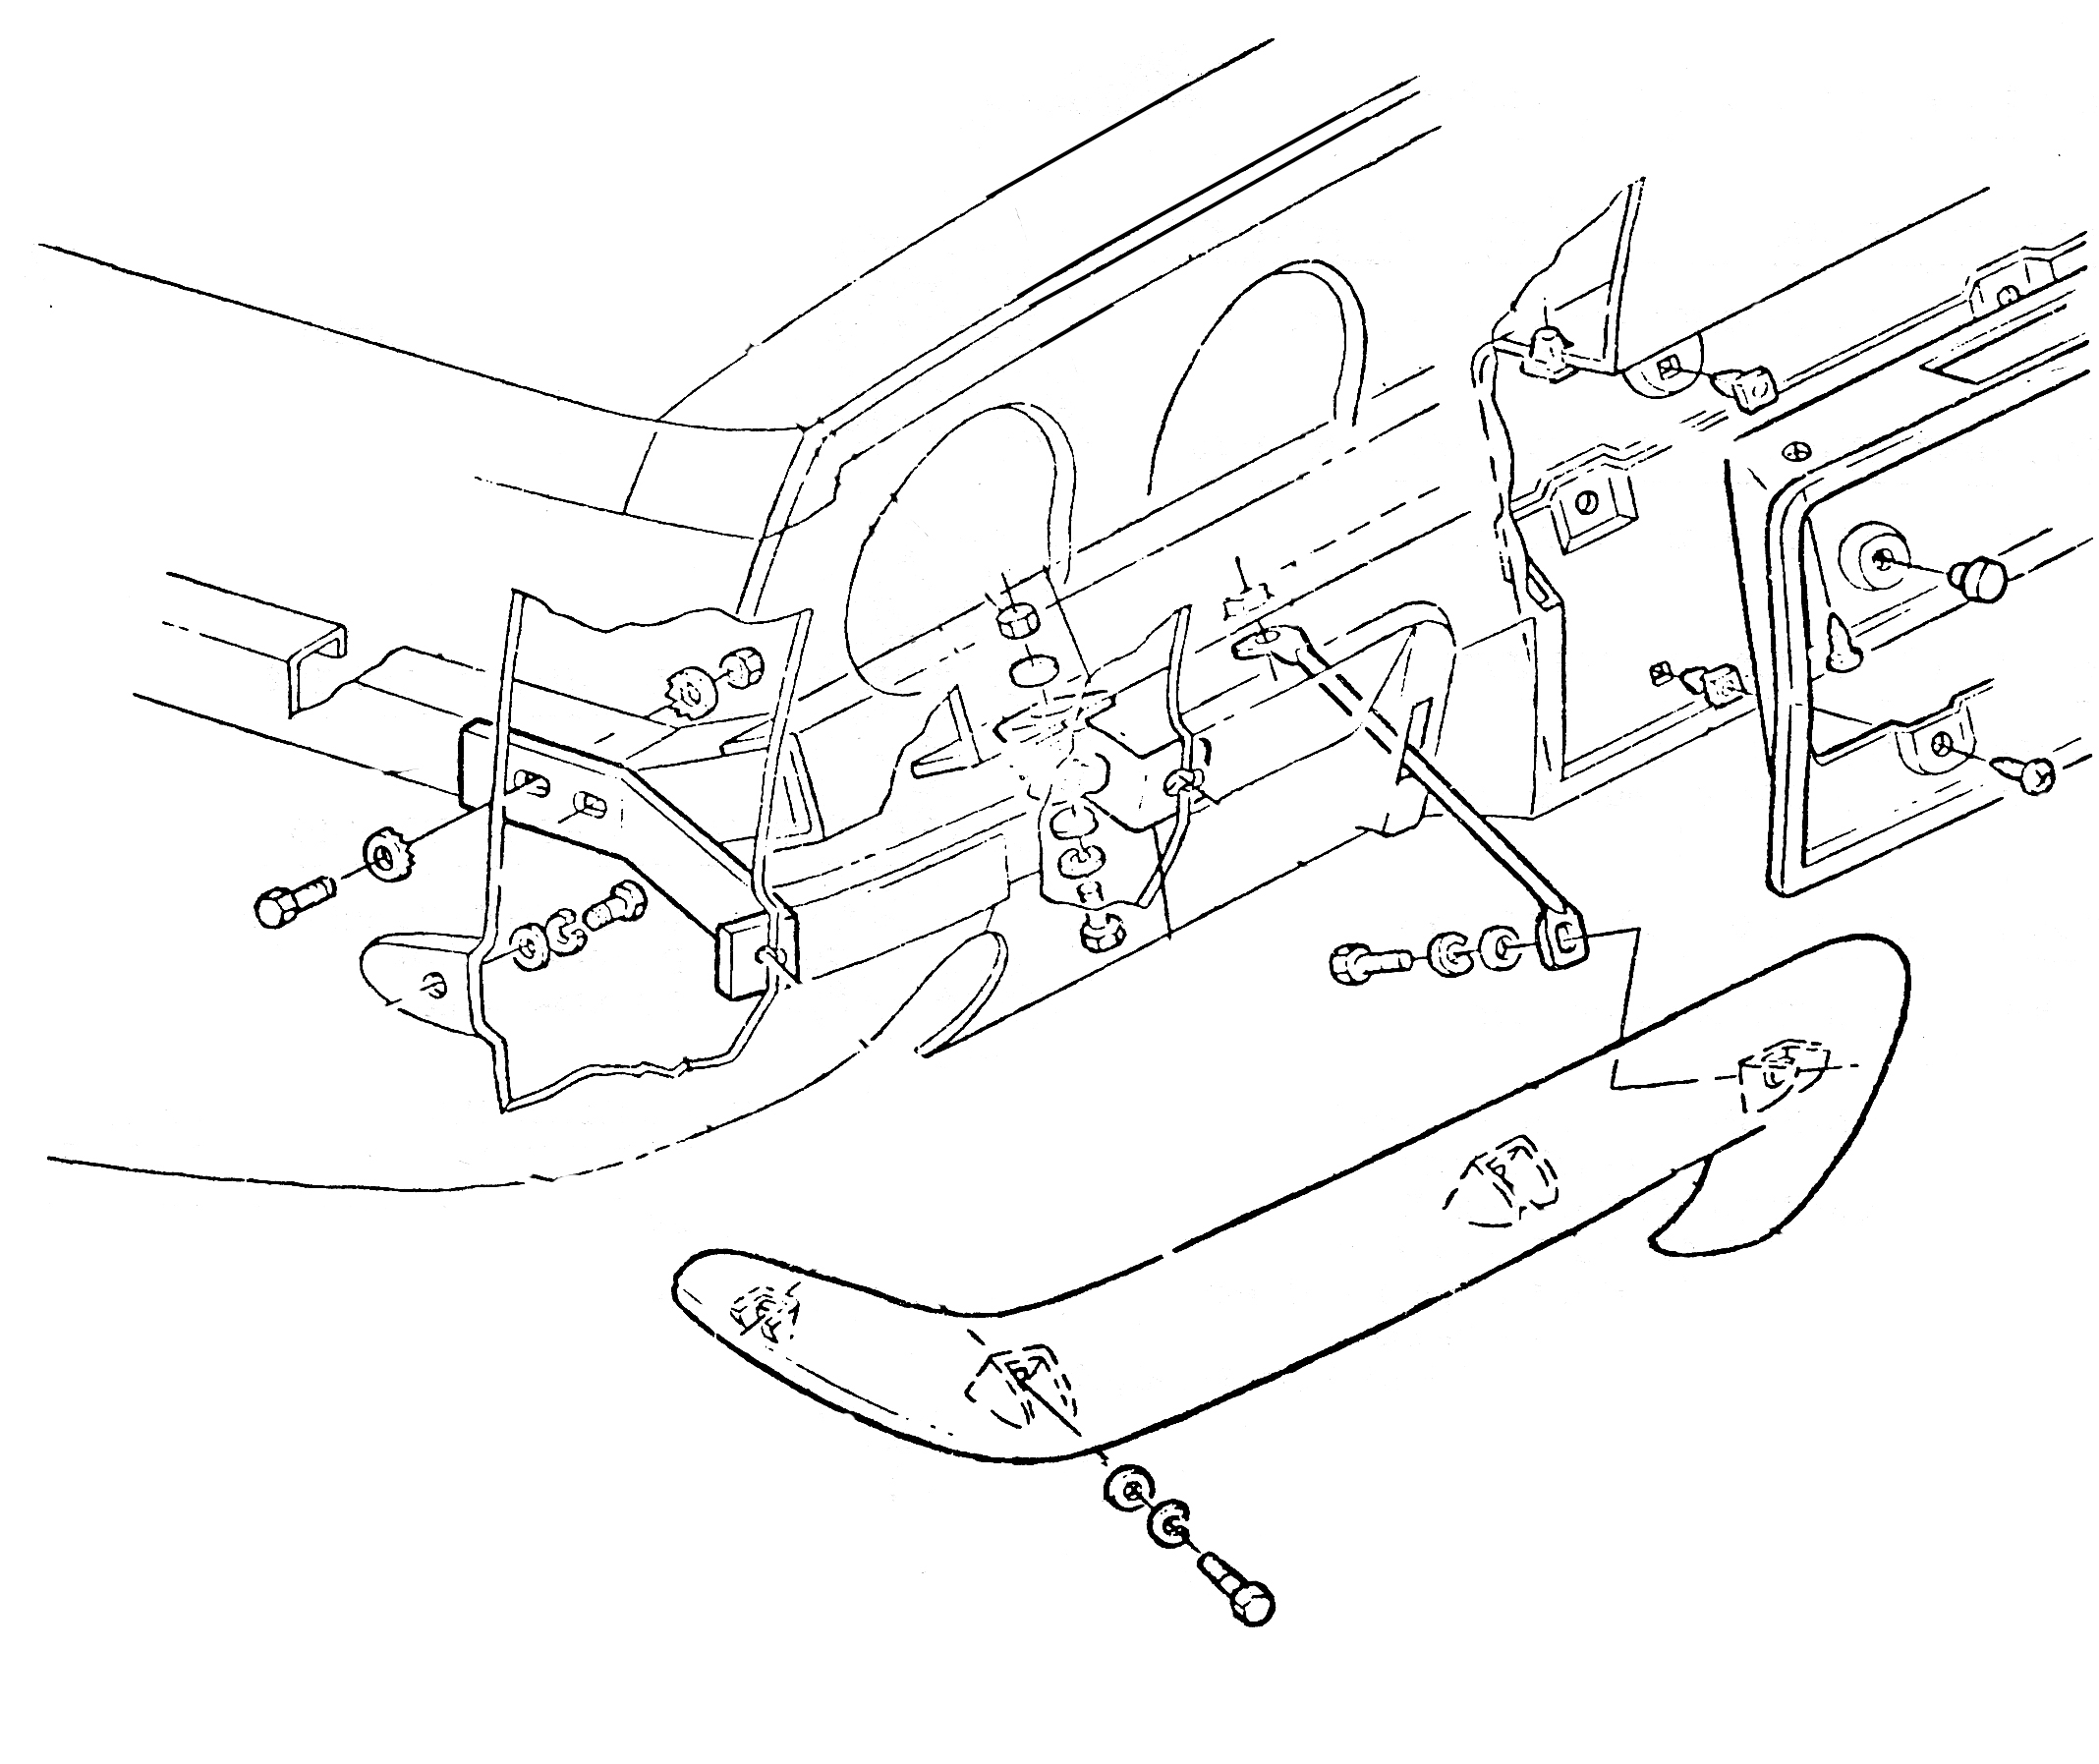 Corvette Parts Diagrams Amp Accessories For C1 C2 And C3